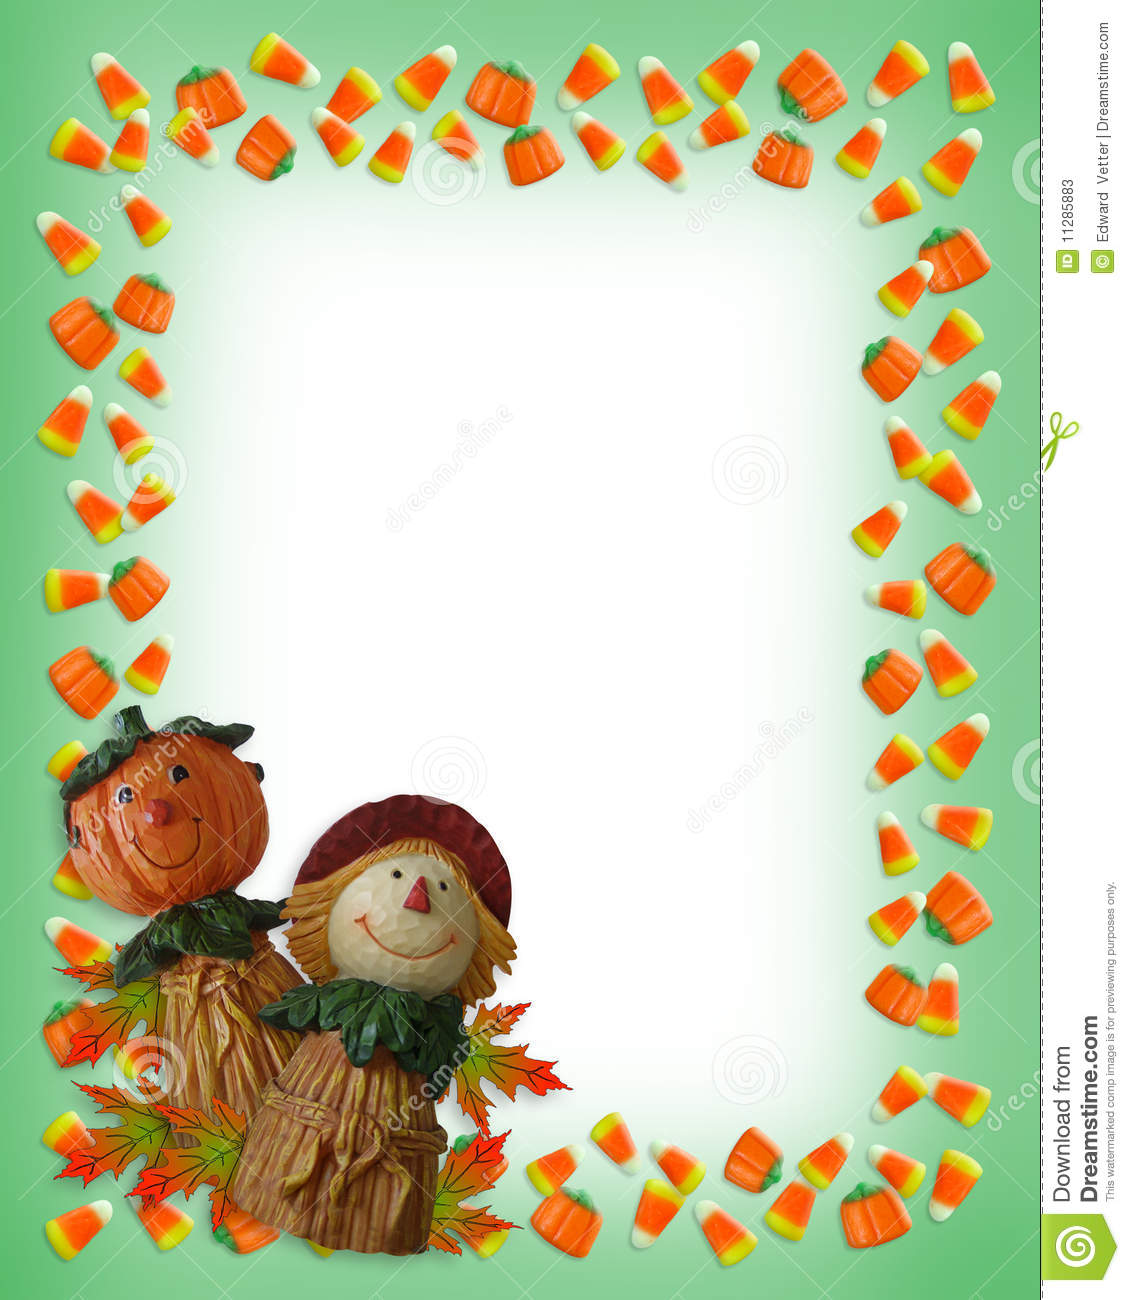 Pumpkin Patch Border Clipart Images & Pictures - Becuo